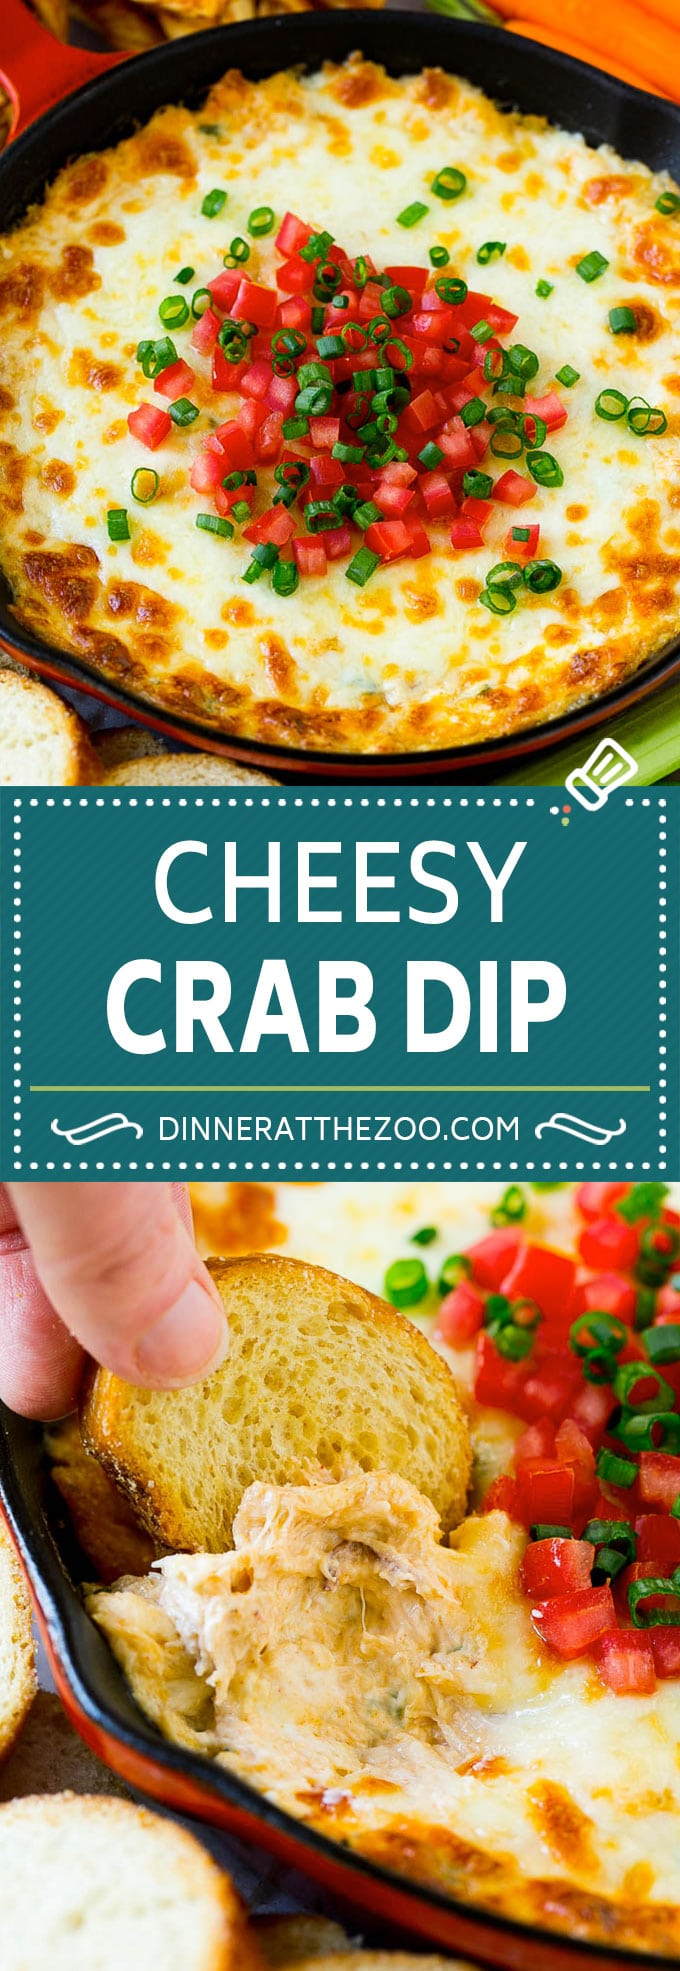 How To Make Crab Queso